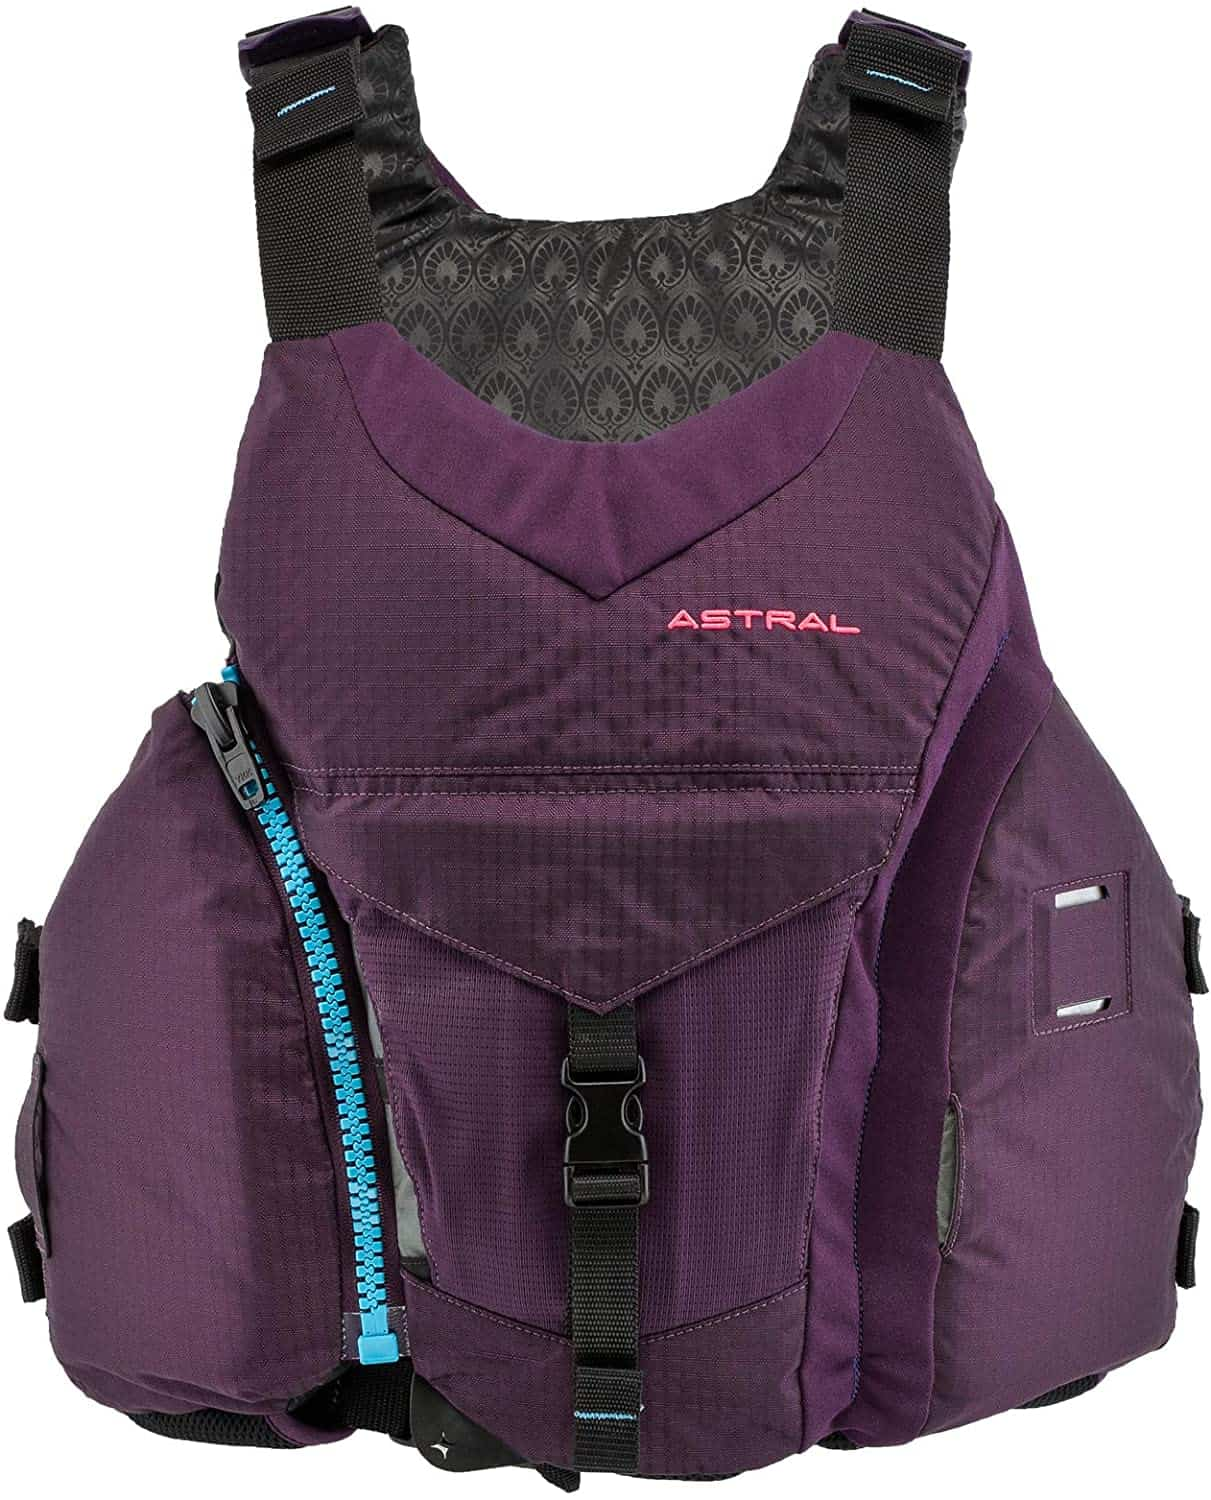 Layla Personal Floating Device or Life Jacket by Astral